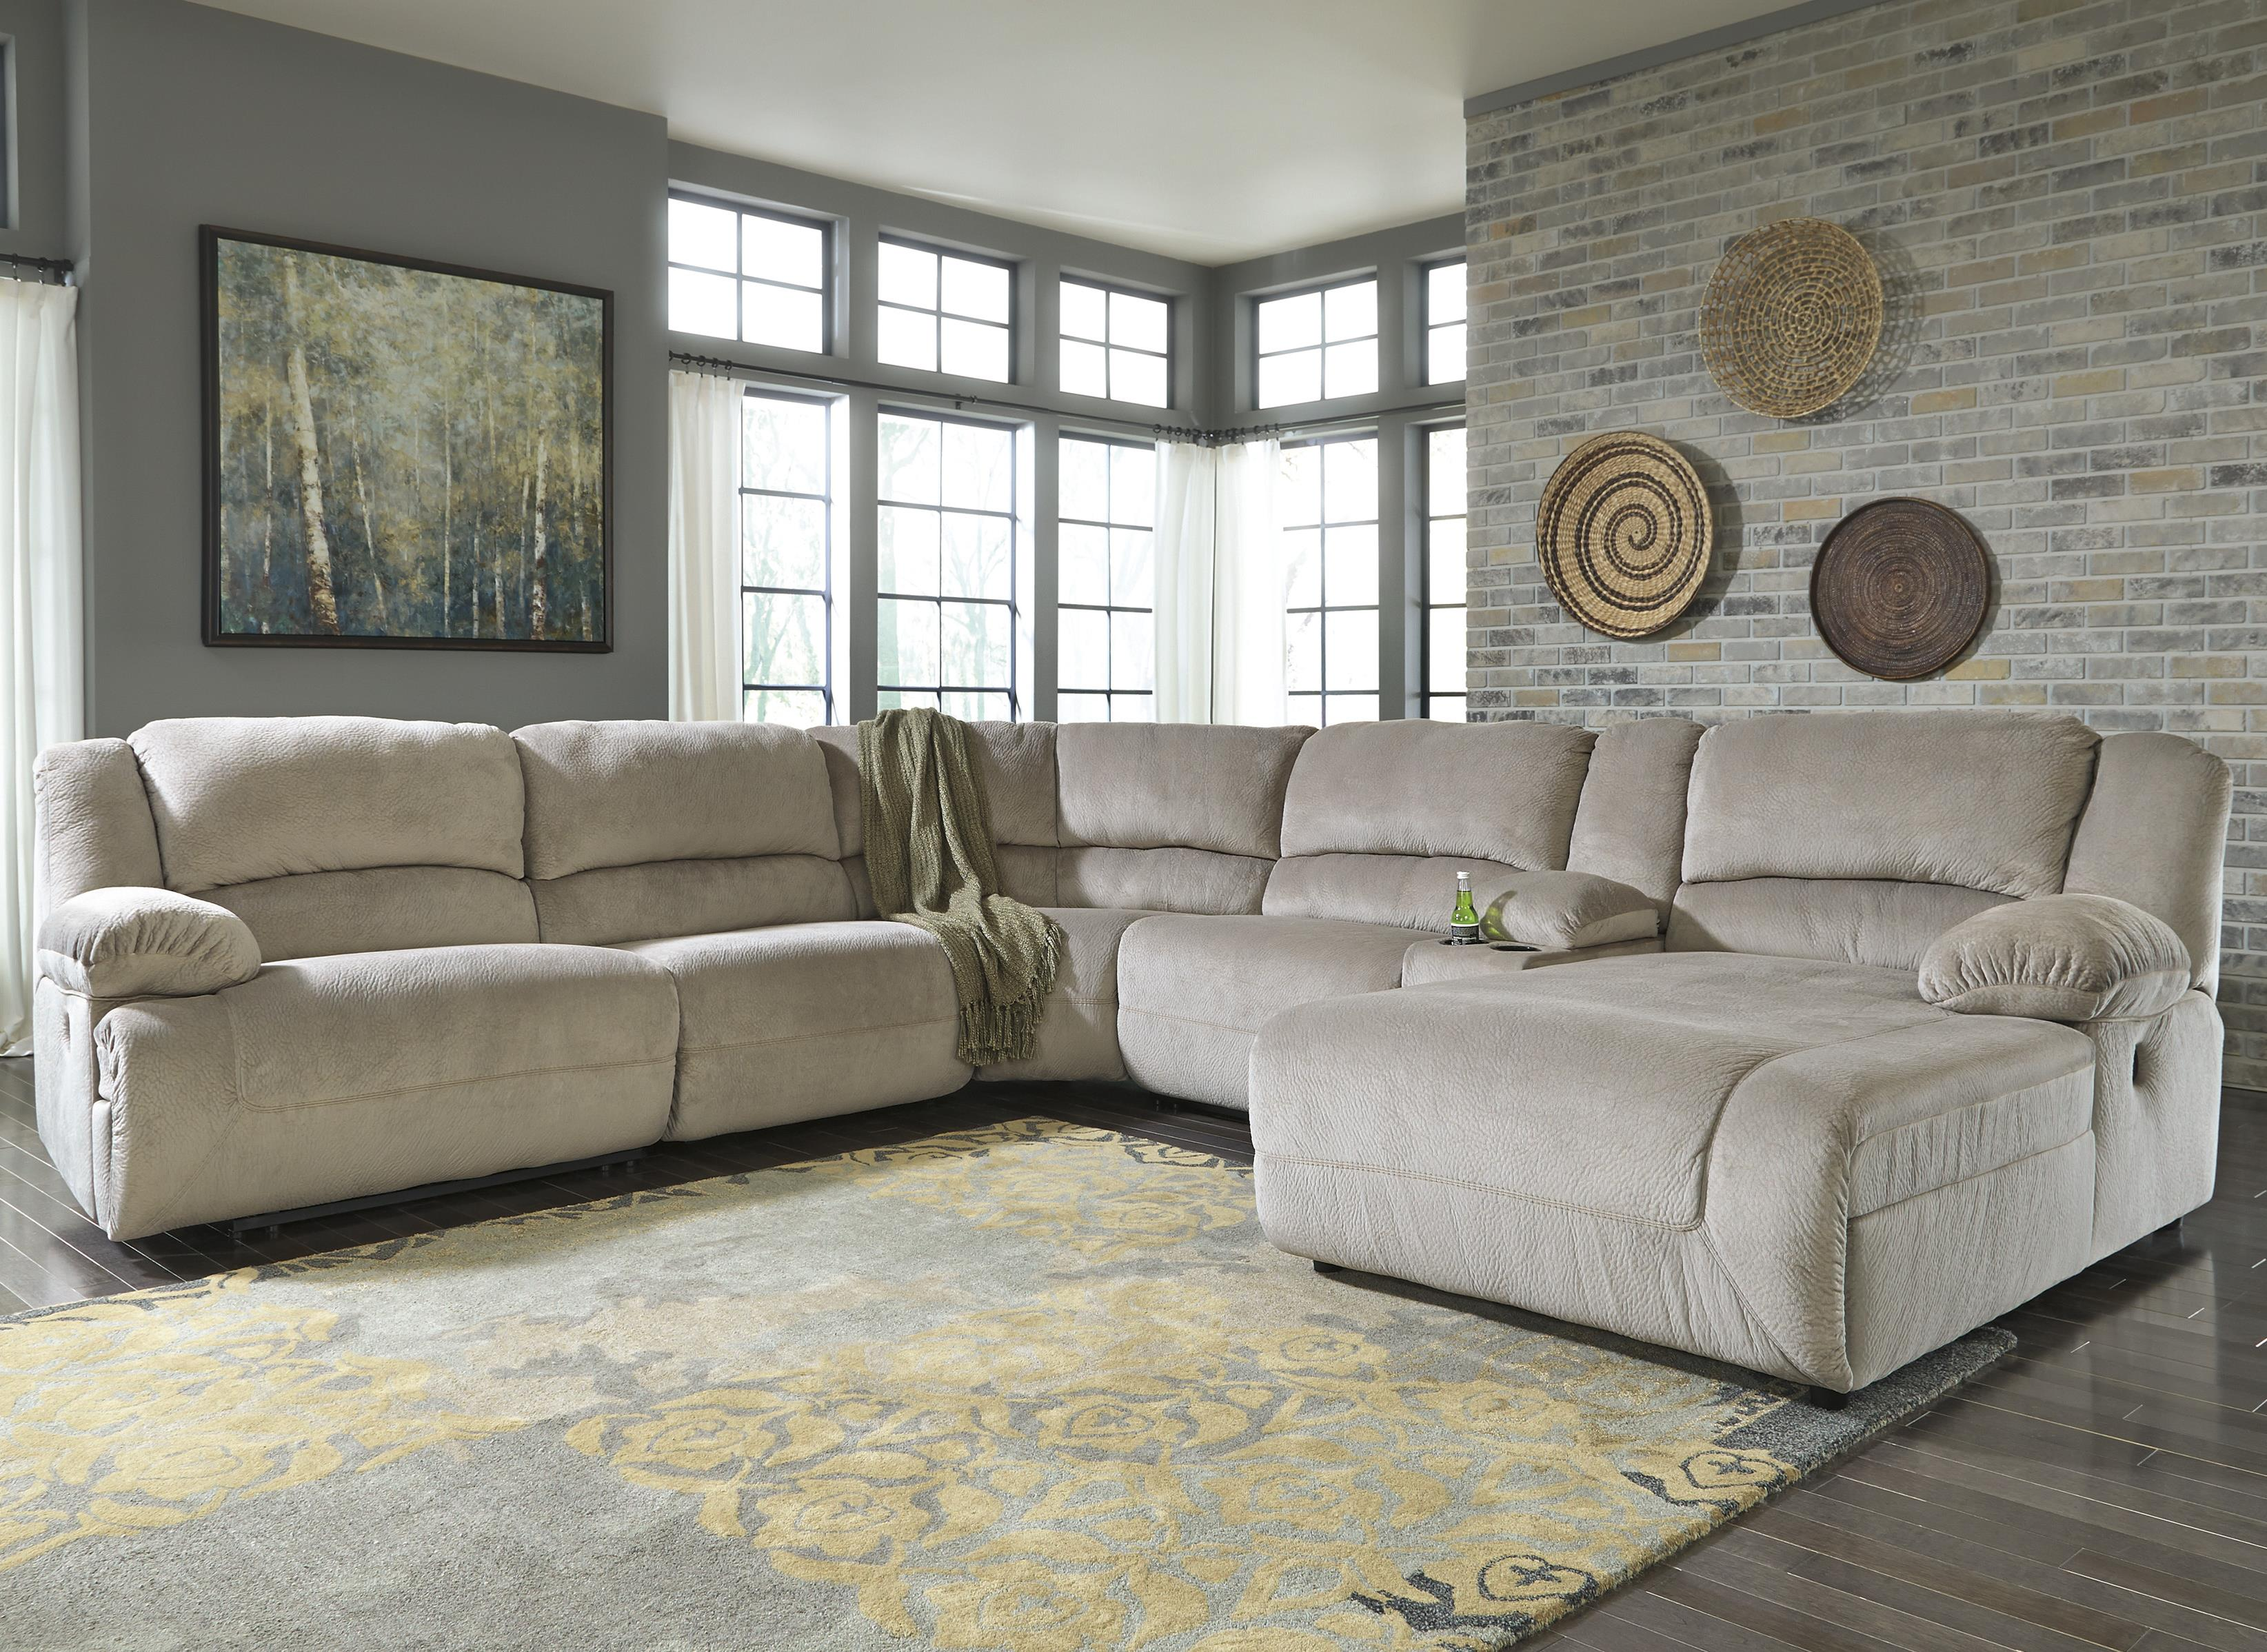 Signature Design by Ashley Toletta - Granite Reclining Sectional w/ Console & Chaise - Item Number: 5670340+19+77+46+57+07